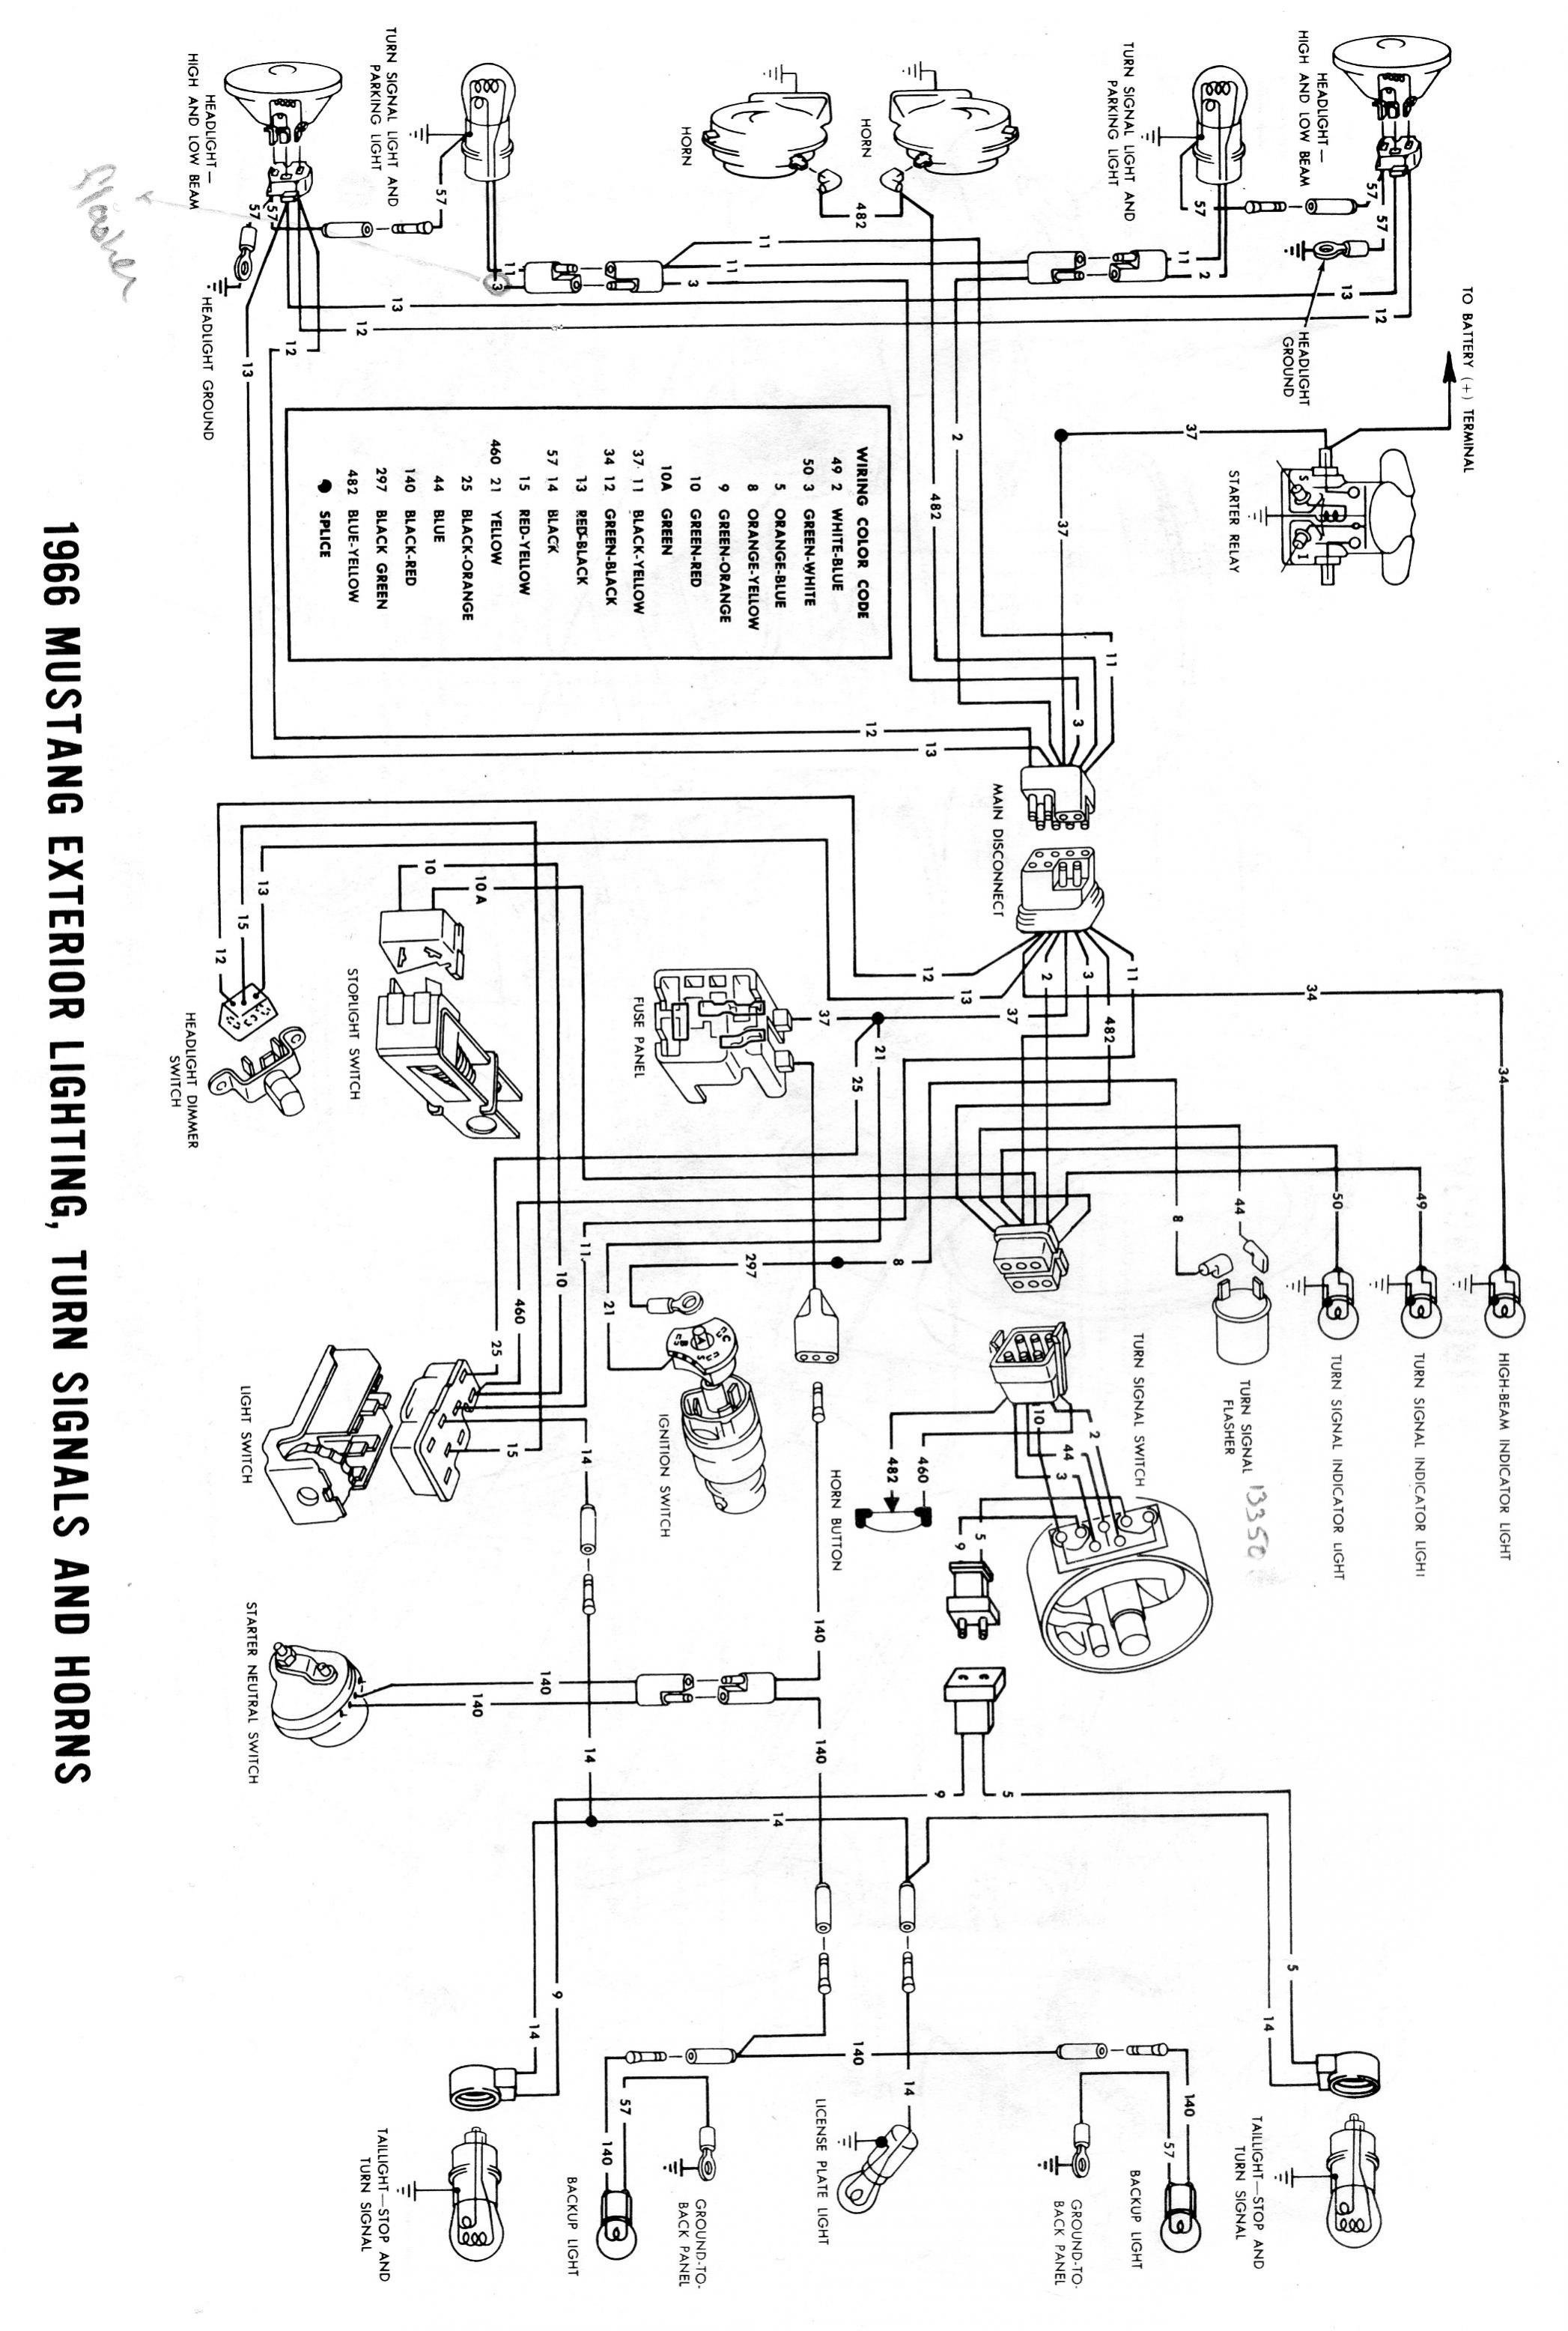 66 Ford Mustang Wiring Diagram Ford Wiring Diagram Images